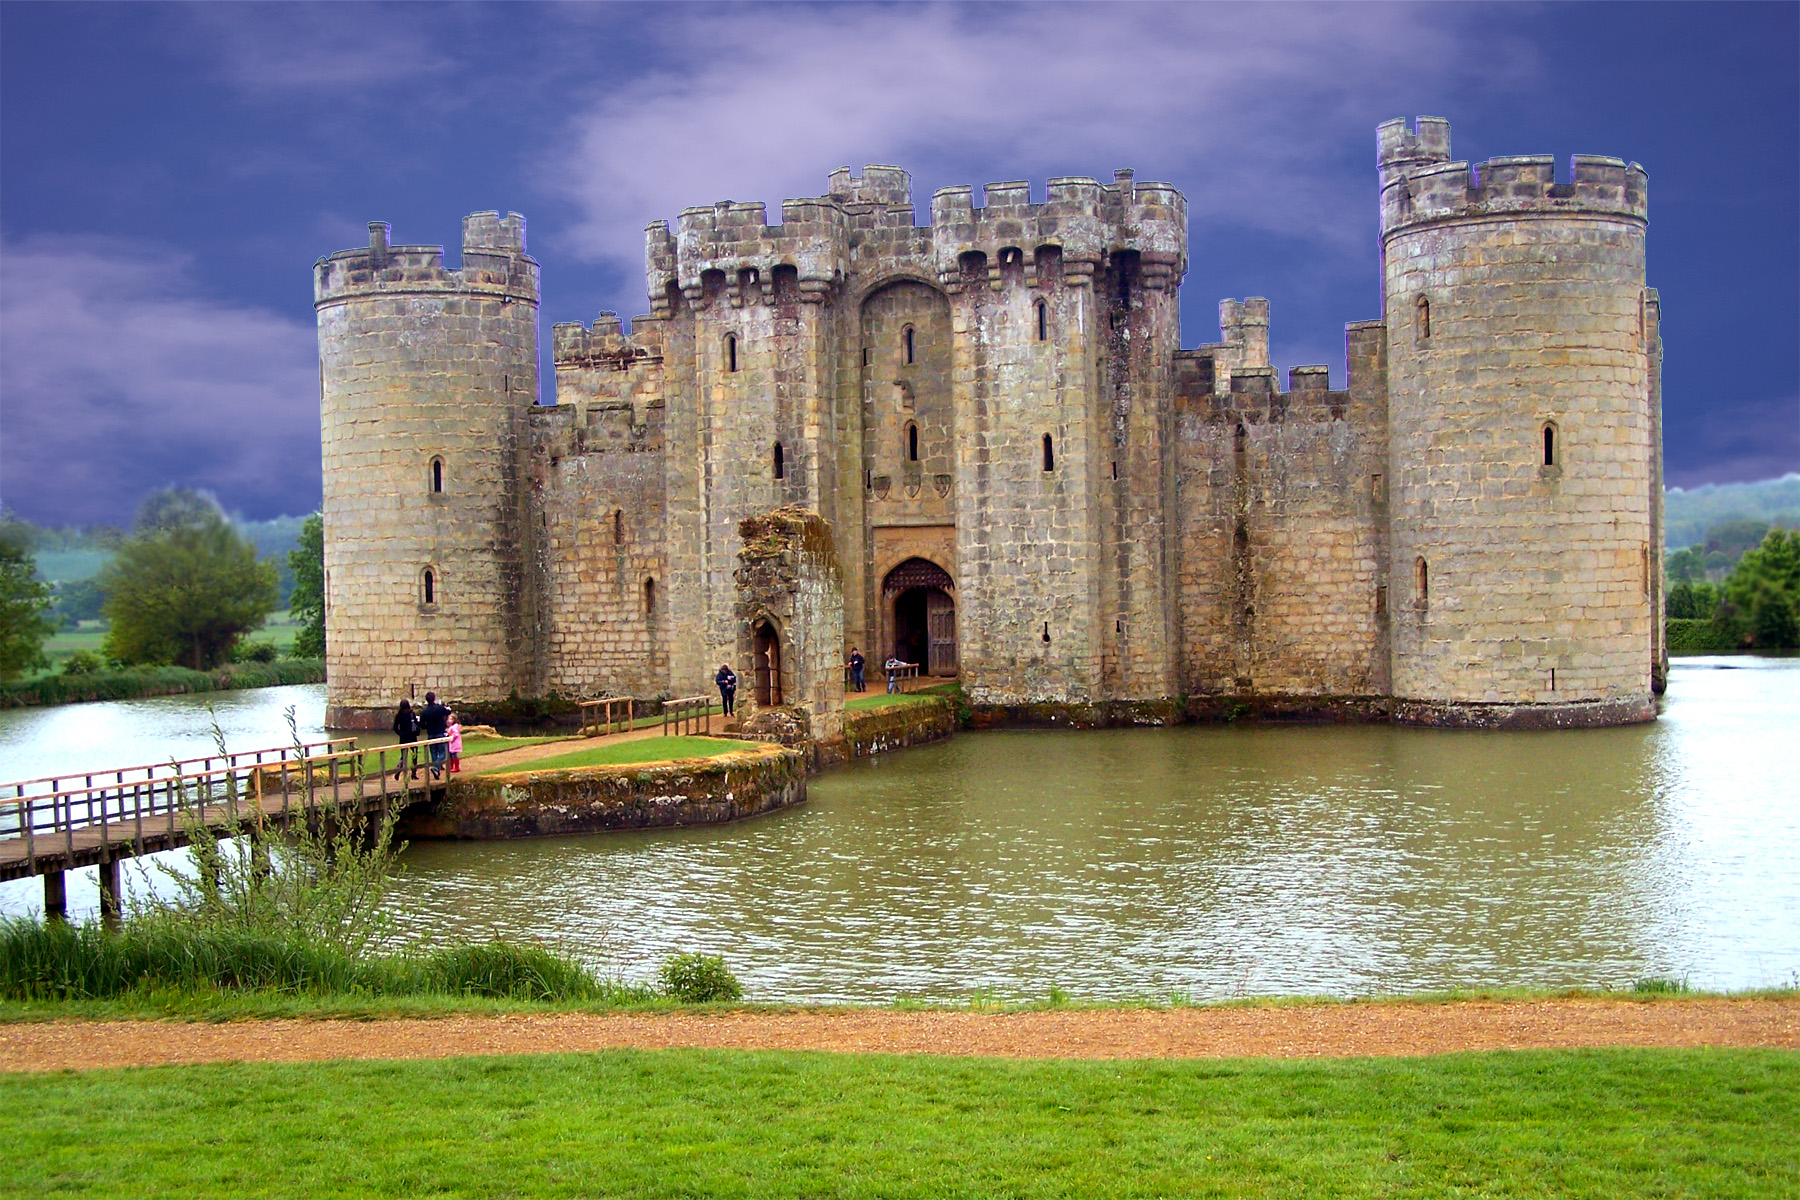 Bodiam castle in east sussex england images 11